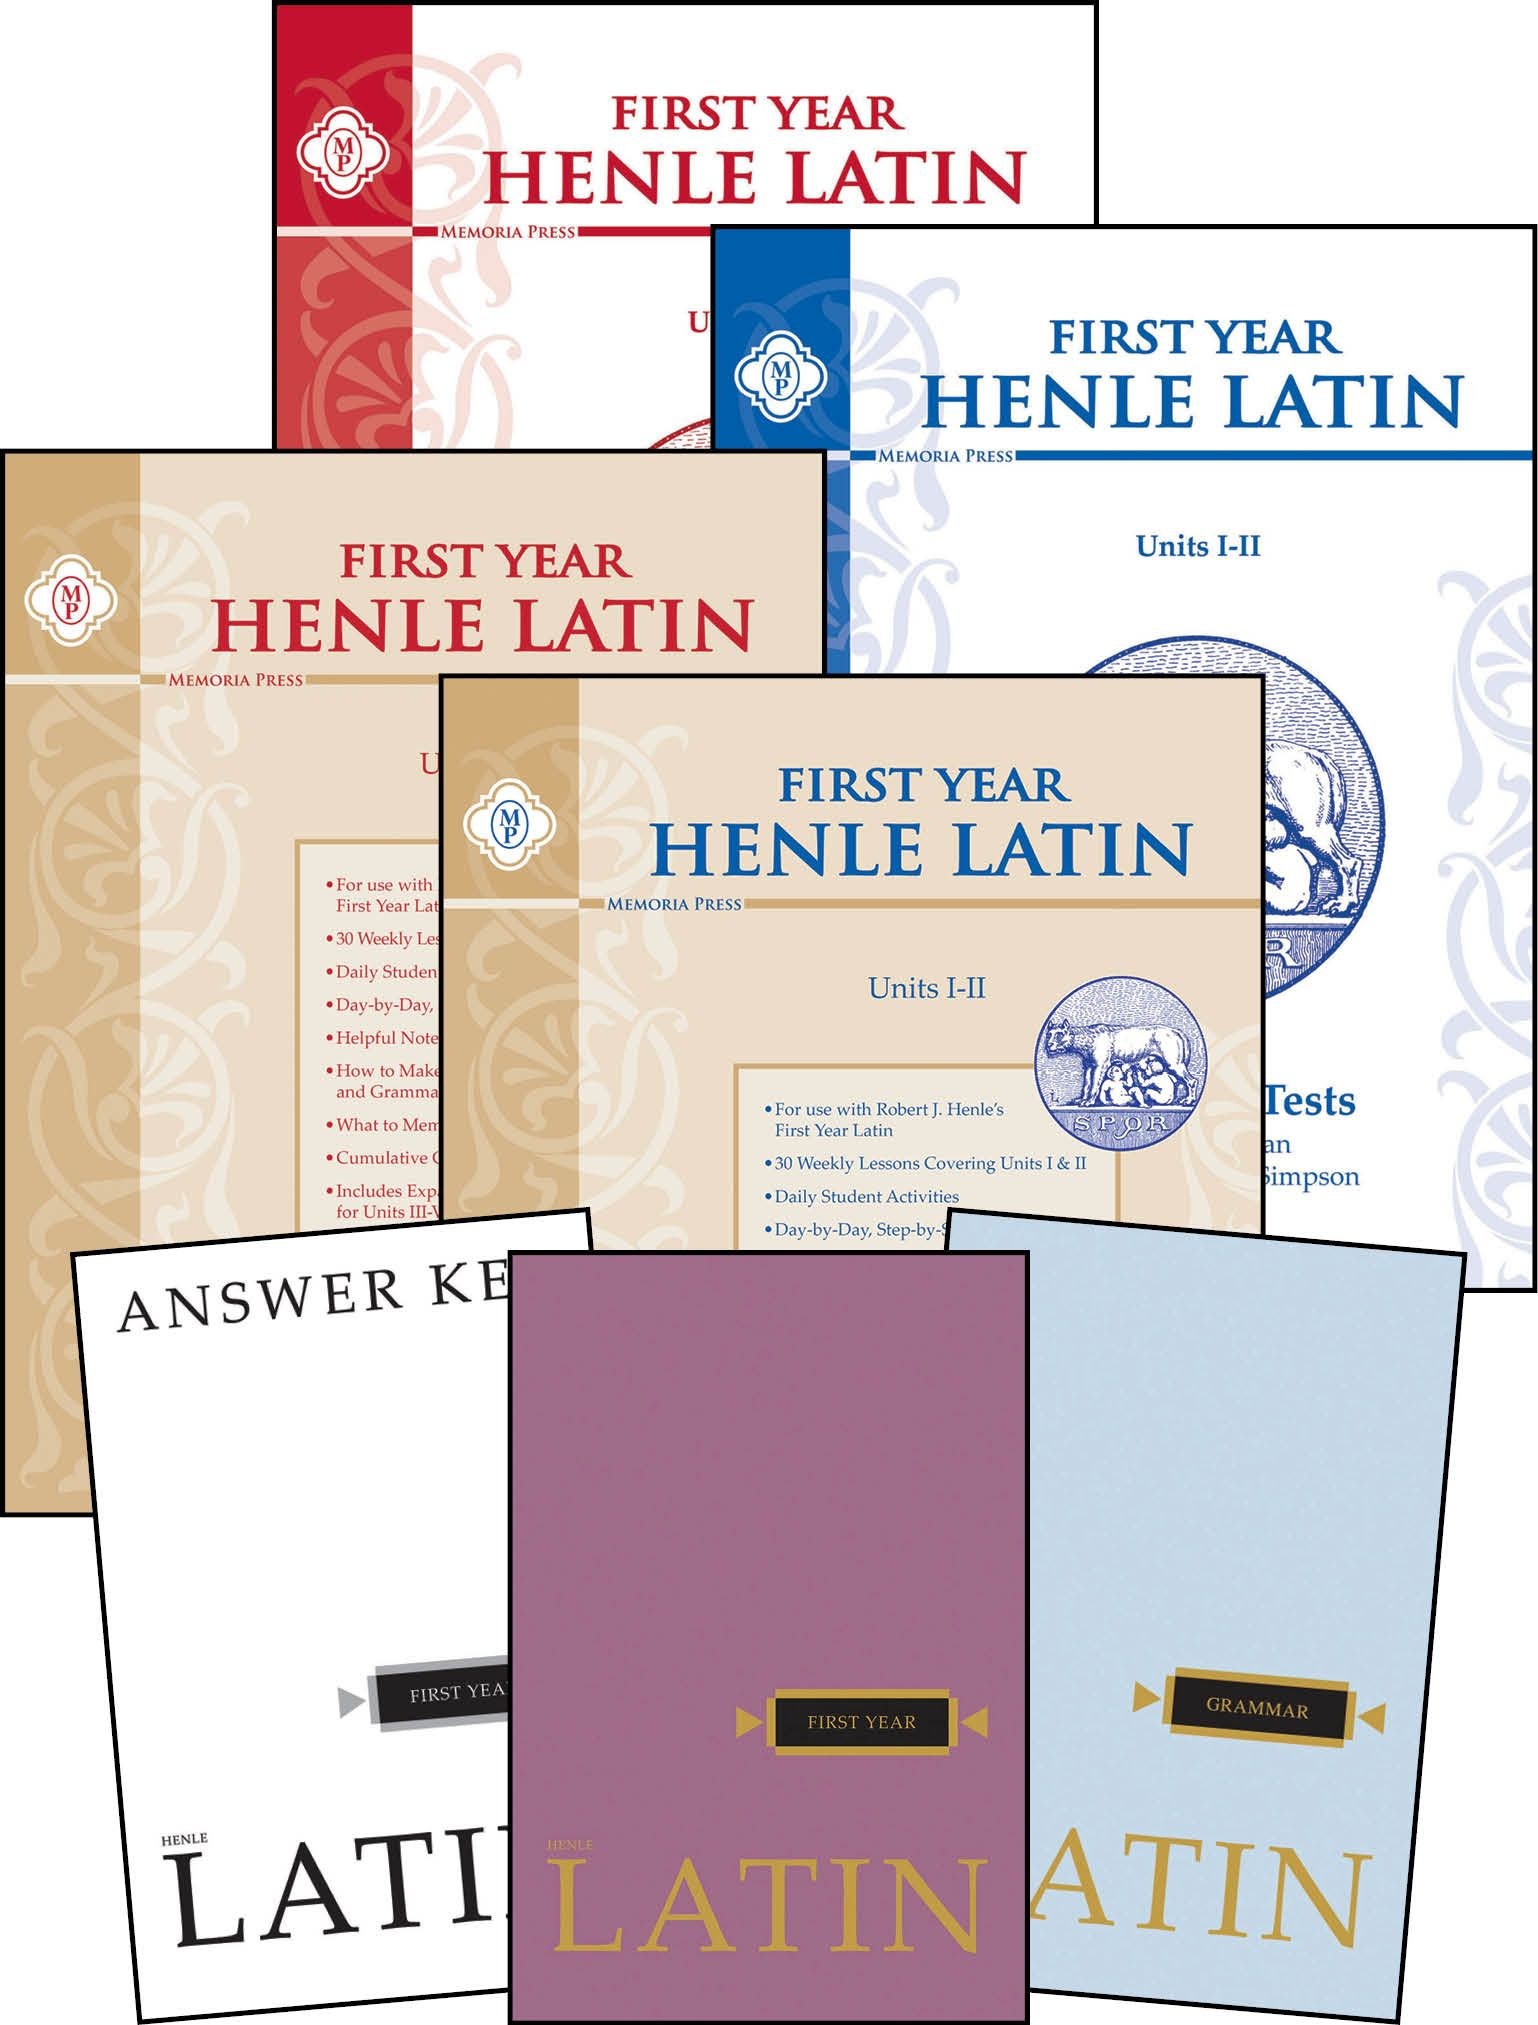 Loop Of Henle Explained Manual Guide